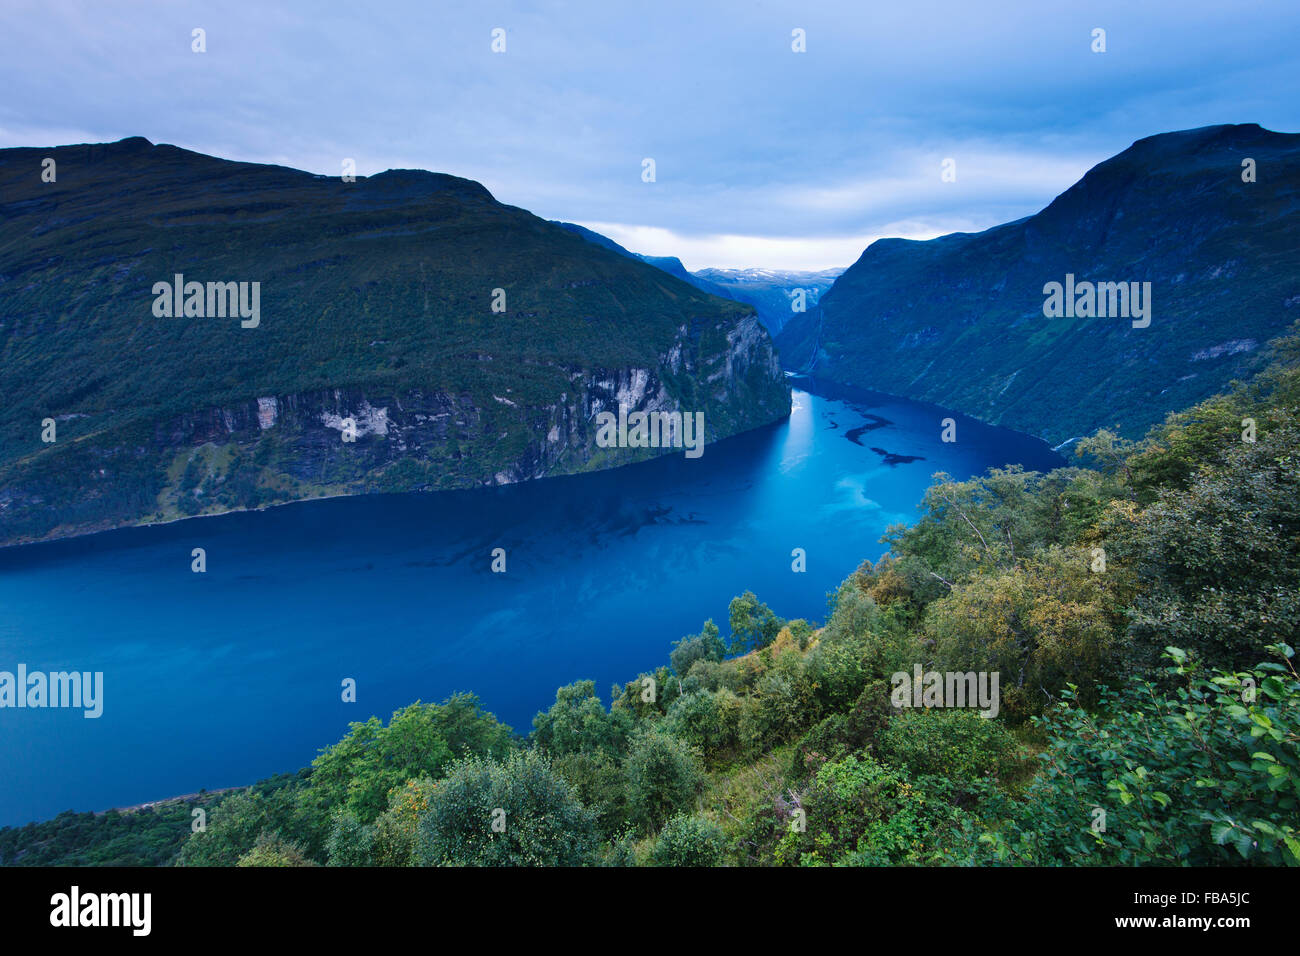 Norway, More og Romsdal, Sunnmore, Scenic view of mountainous landscape with lake - Stock Image